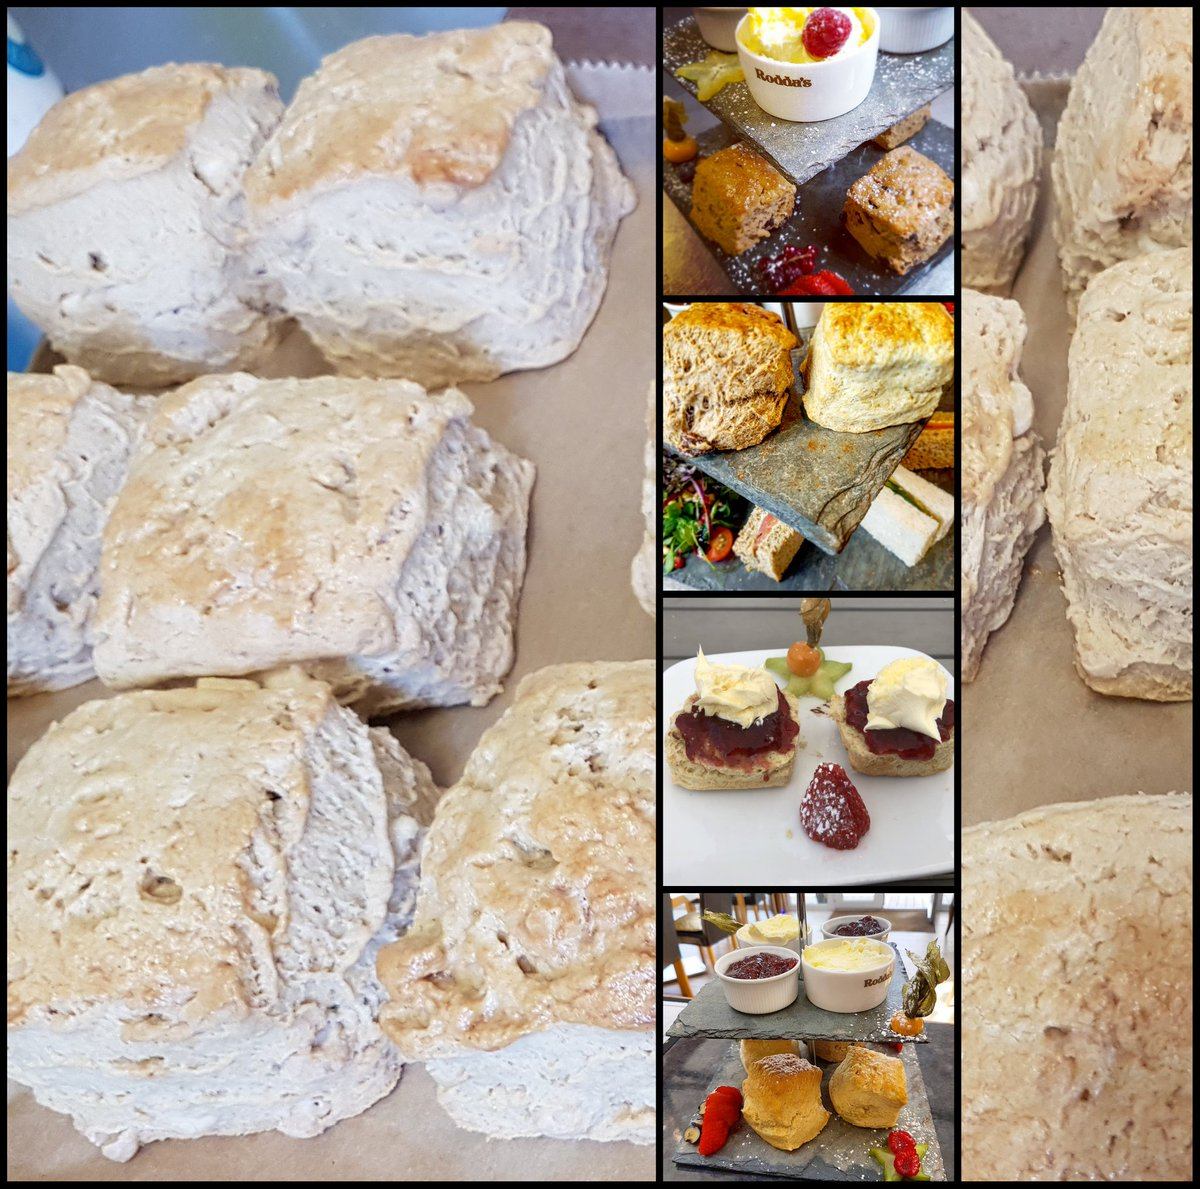 Our #squarescones are now famous , it was our aim to show that we were serving 100%homemade by using an untraditional shape #creamteahour<br>http://pic.twitter.com/wUO8qXeNeT